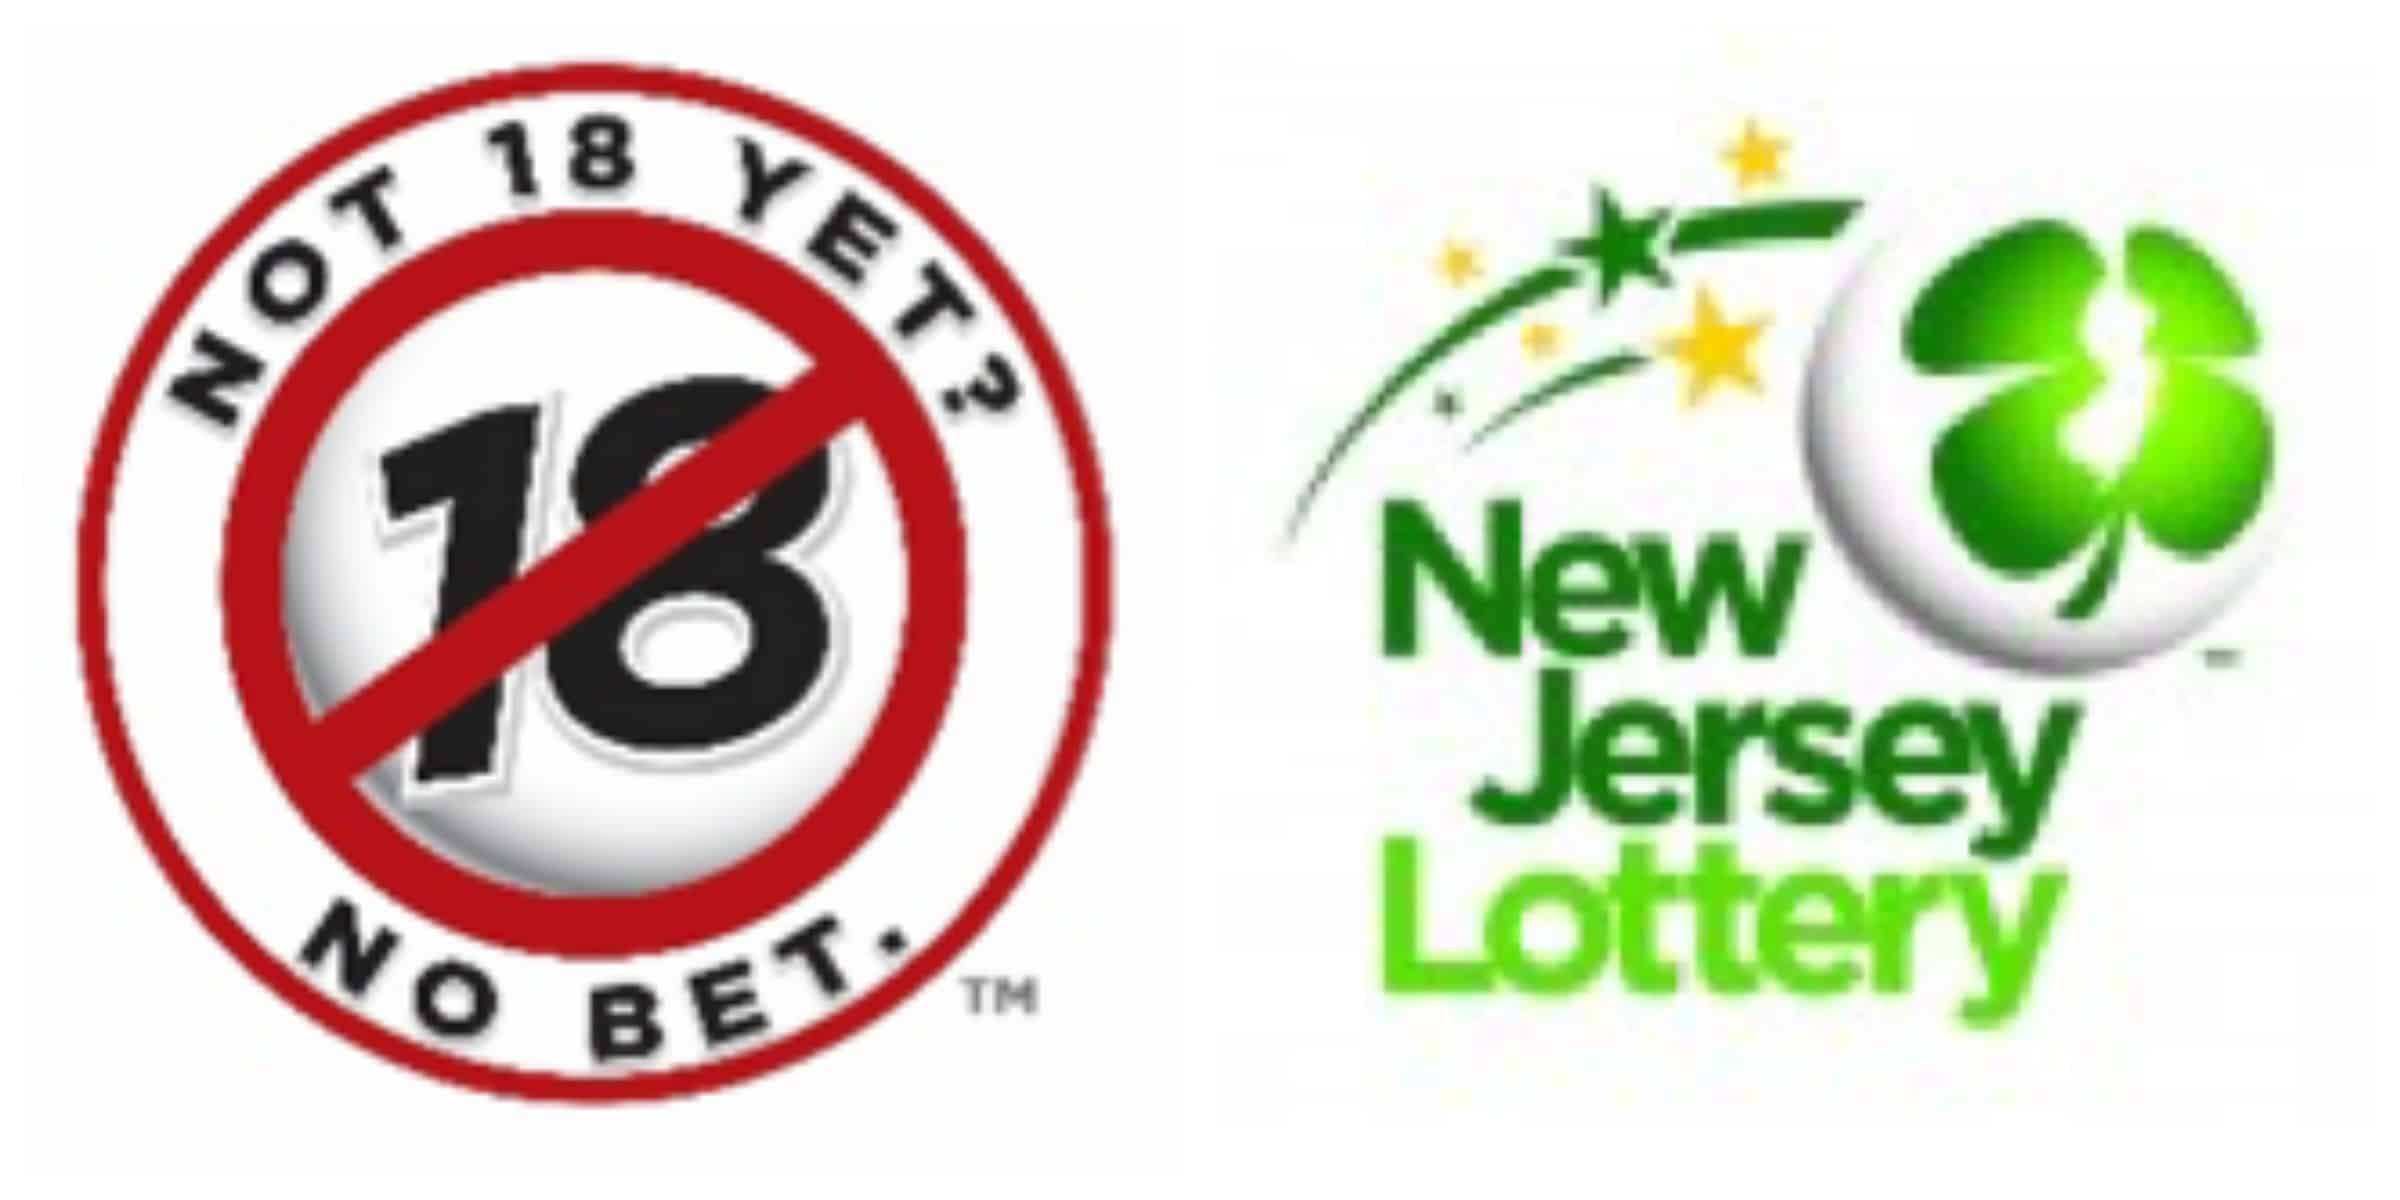 NJ Lottery must be 18 to play